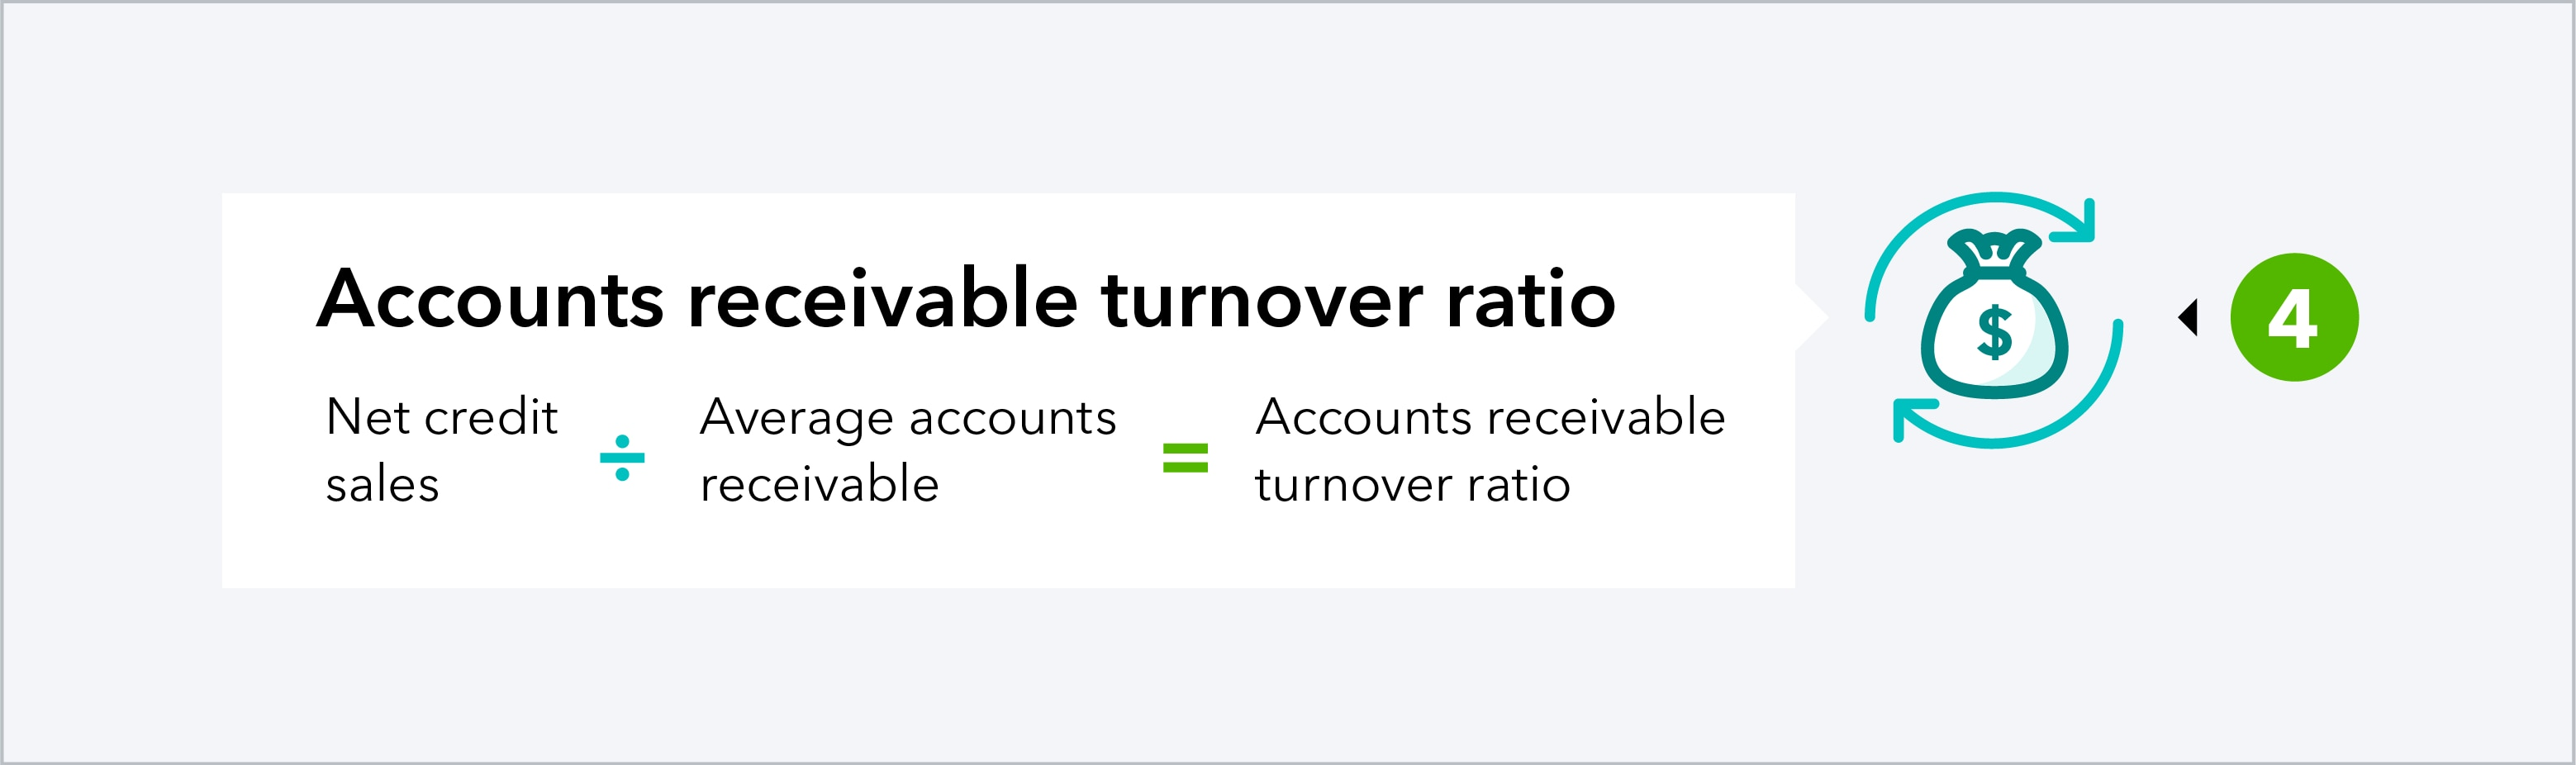 KPI for small business: Accounts receivable turnover ratio